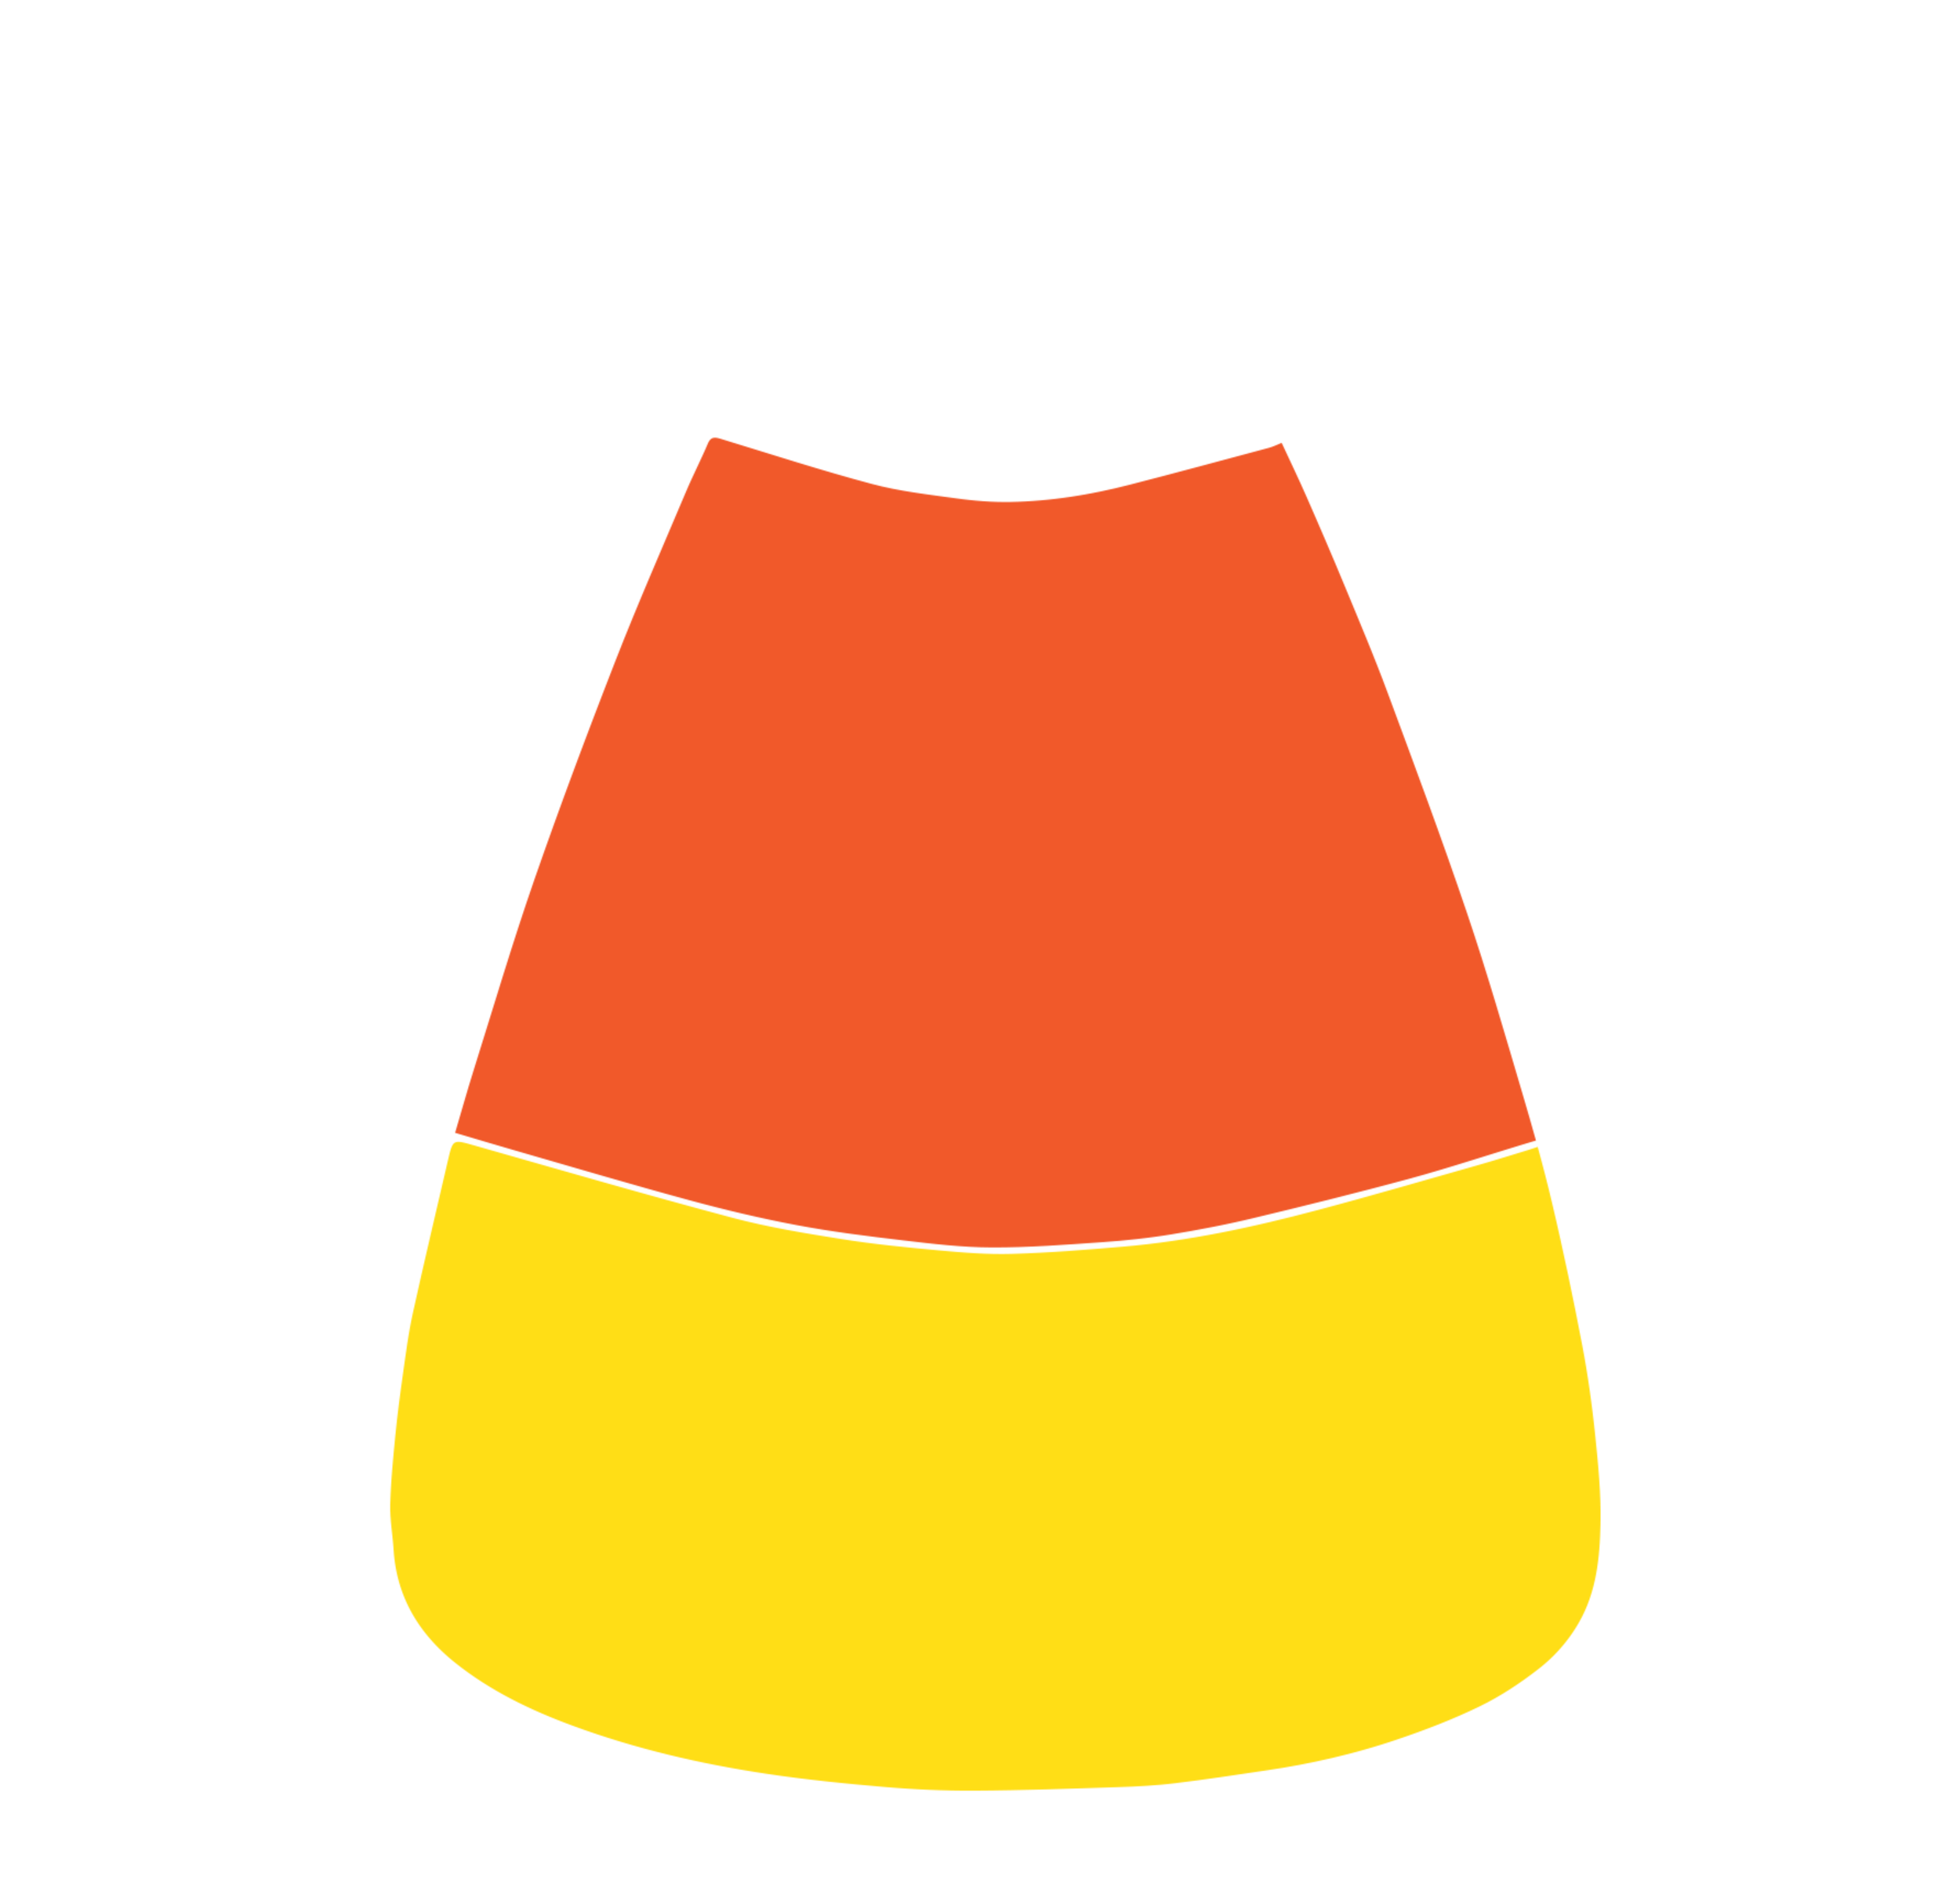 2500x2402 Candy Corn Clipart Free Download Clip Art